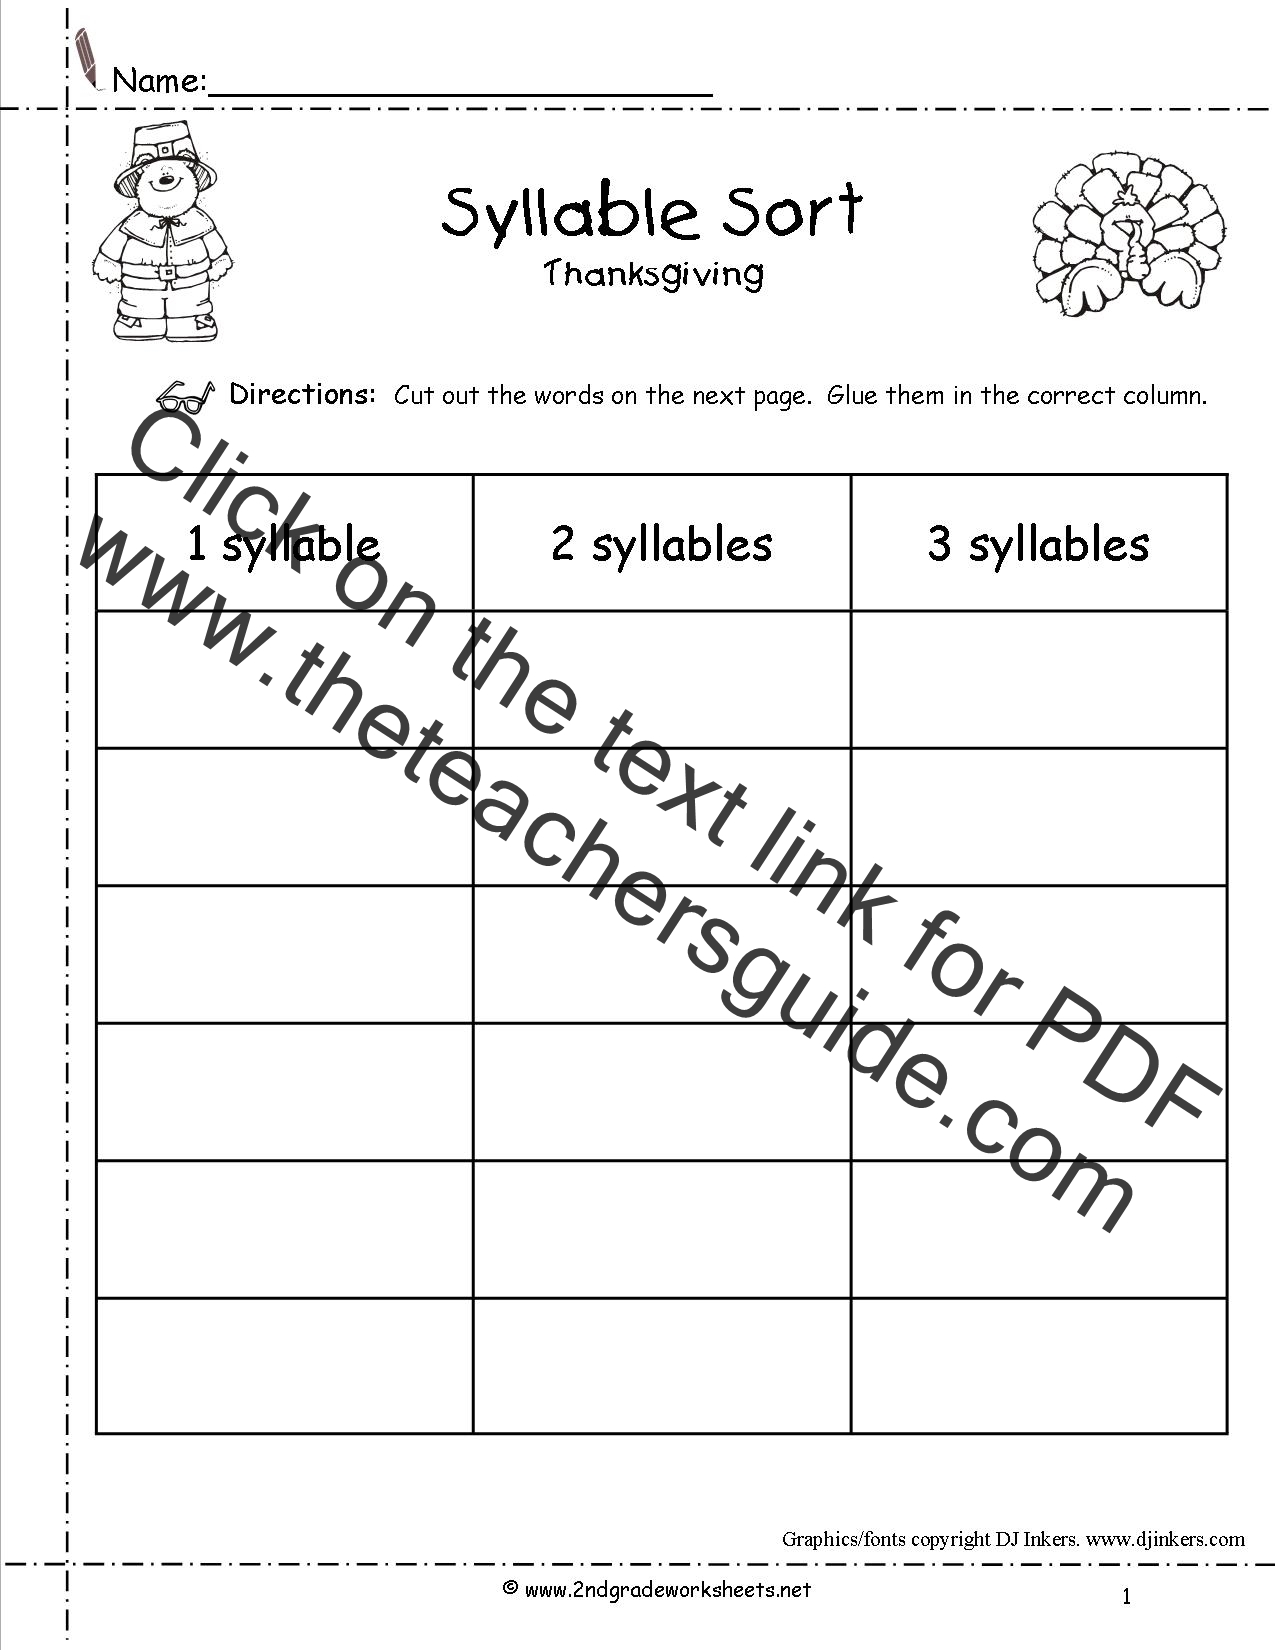 Worksheets Syllable Worksheet syllable worksheets for 2nd grade free library decoding 2 two words worksheets